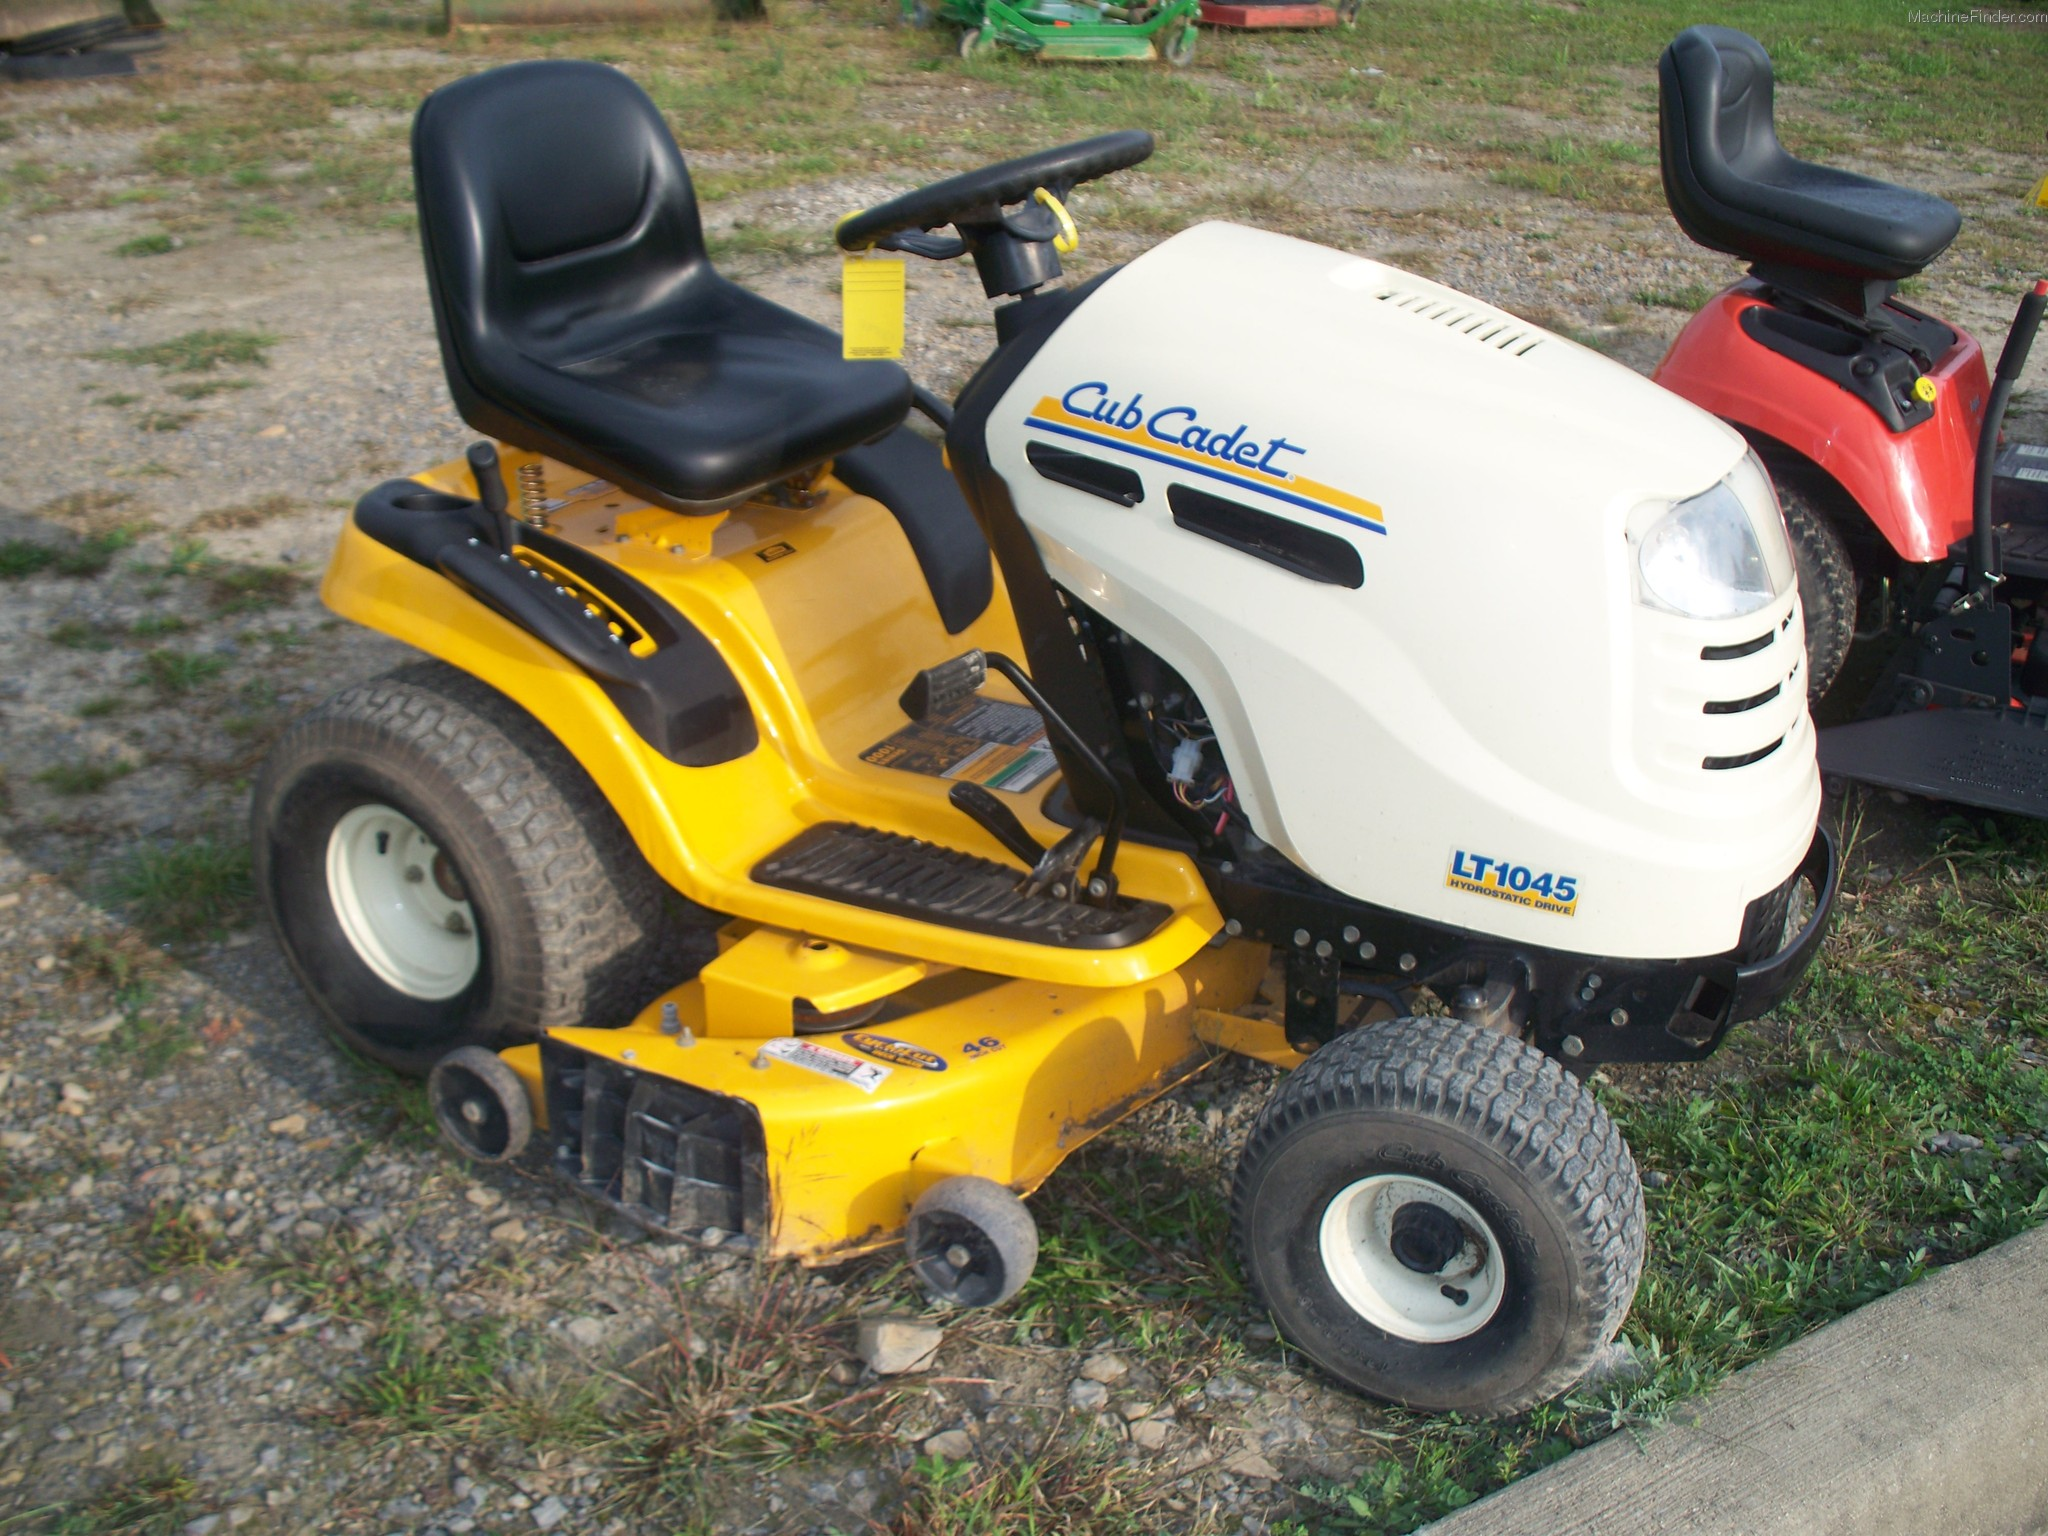 Cub Cadet Lt1045 Lawn Amp Garden And Commercial Mowing John Deere Machinefinder